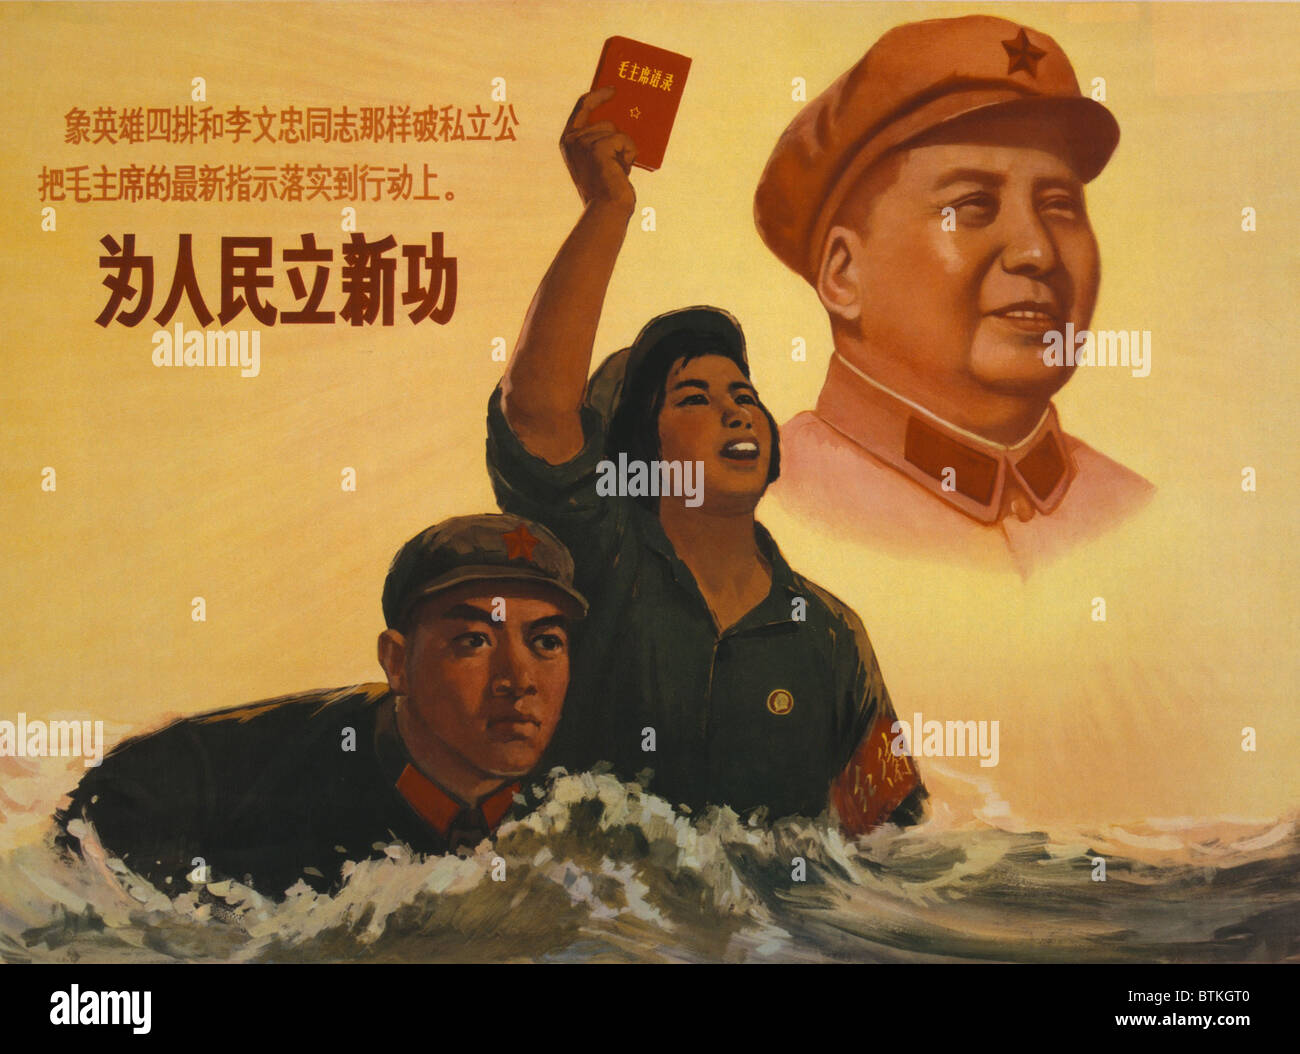 1968 Cultural Revolution poster exhorts Chinese Communists to establish a new standard of merit, using the heroic - Stock Image